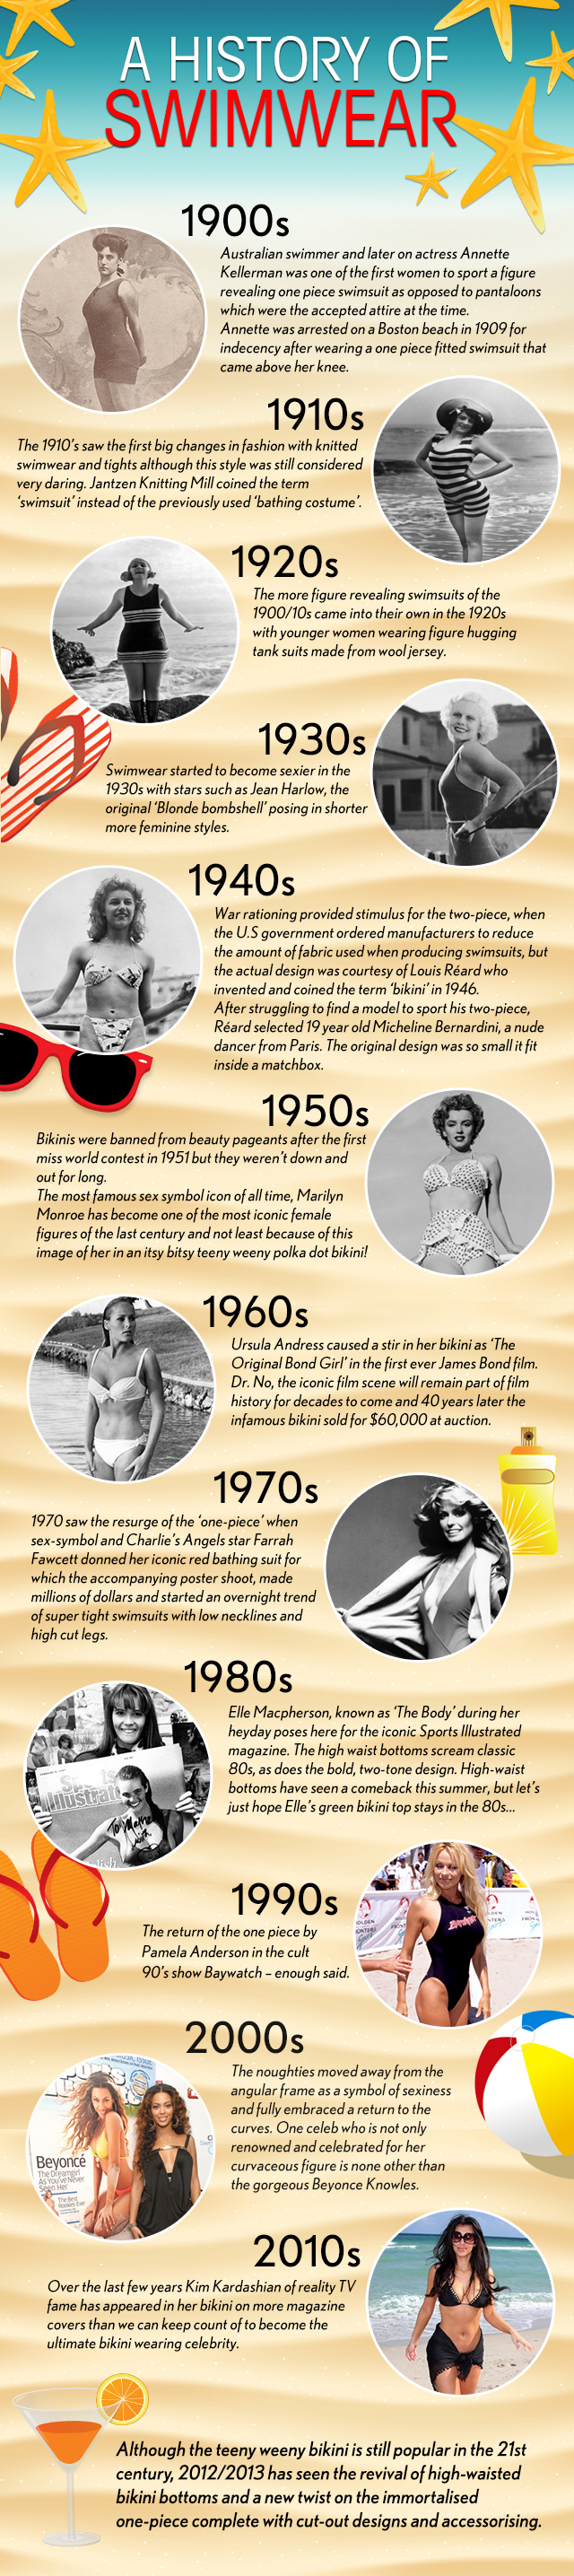 Swimsuit Evolution and History female,cleavage,bikini,costume,swimsuit,swimming,wardrobe,infographic